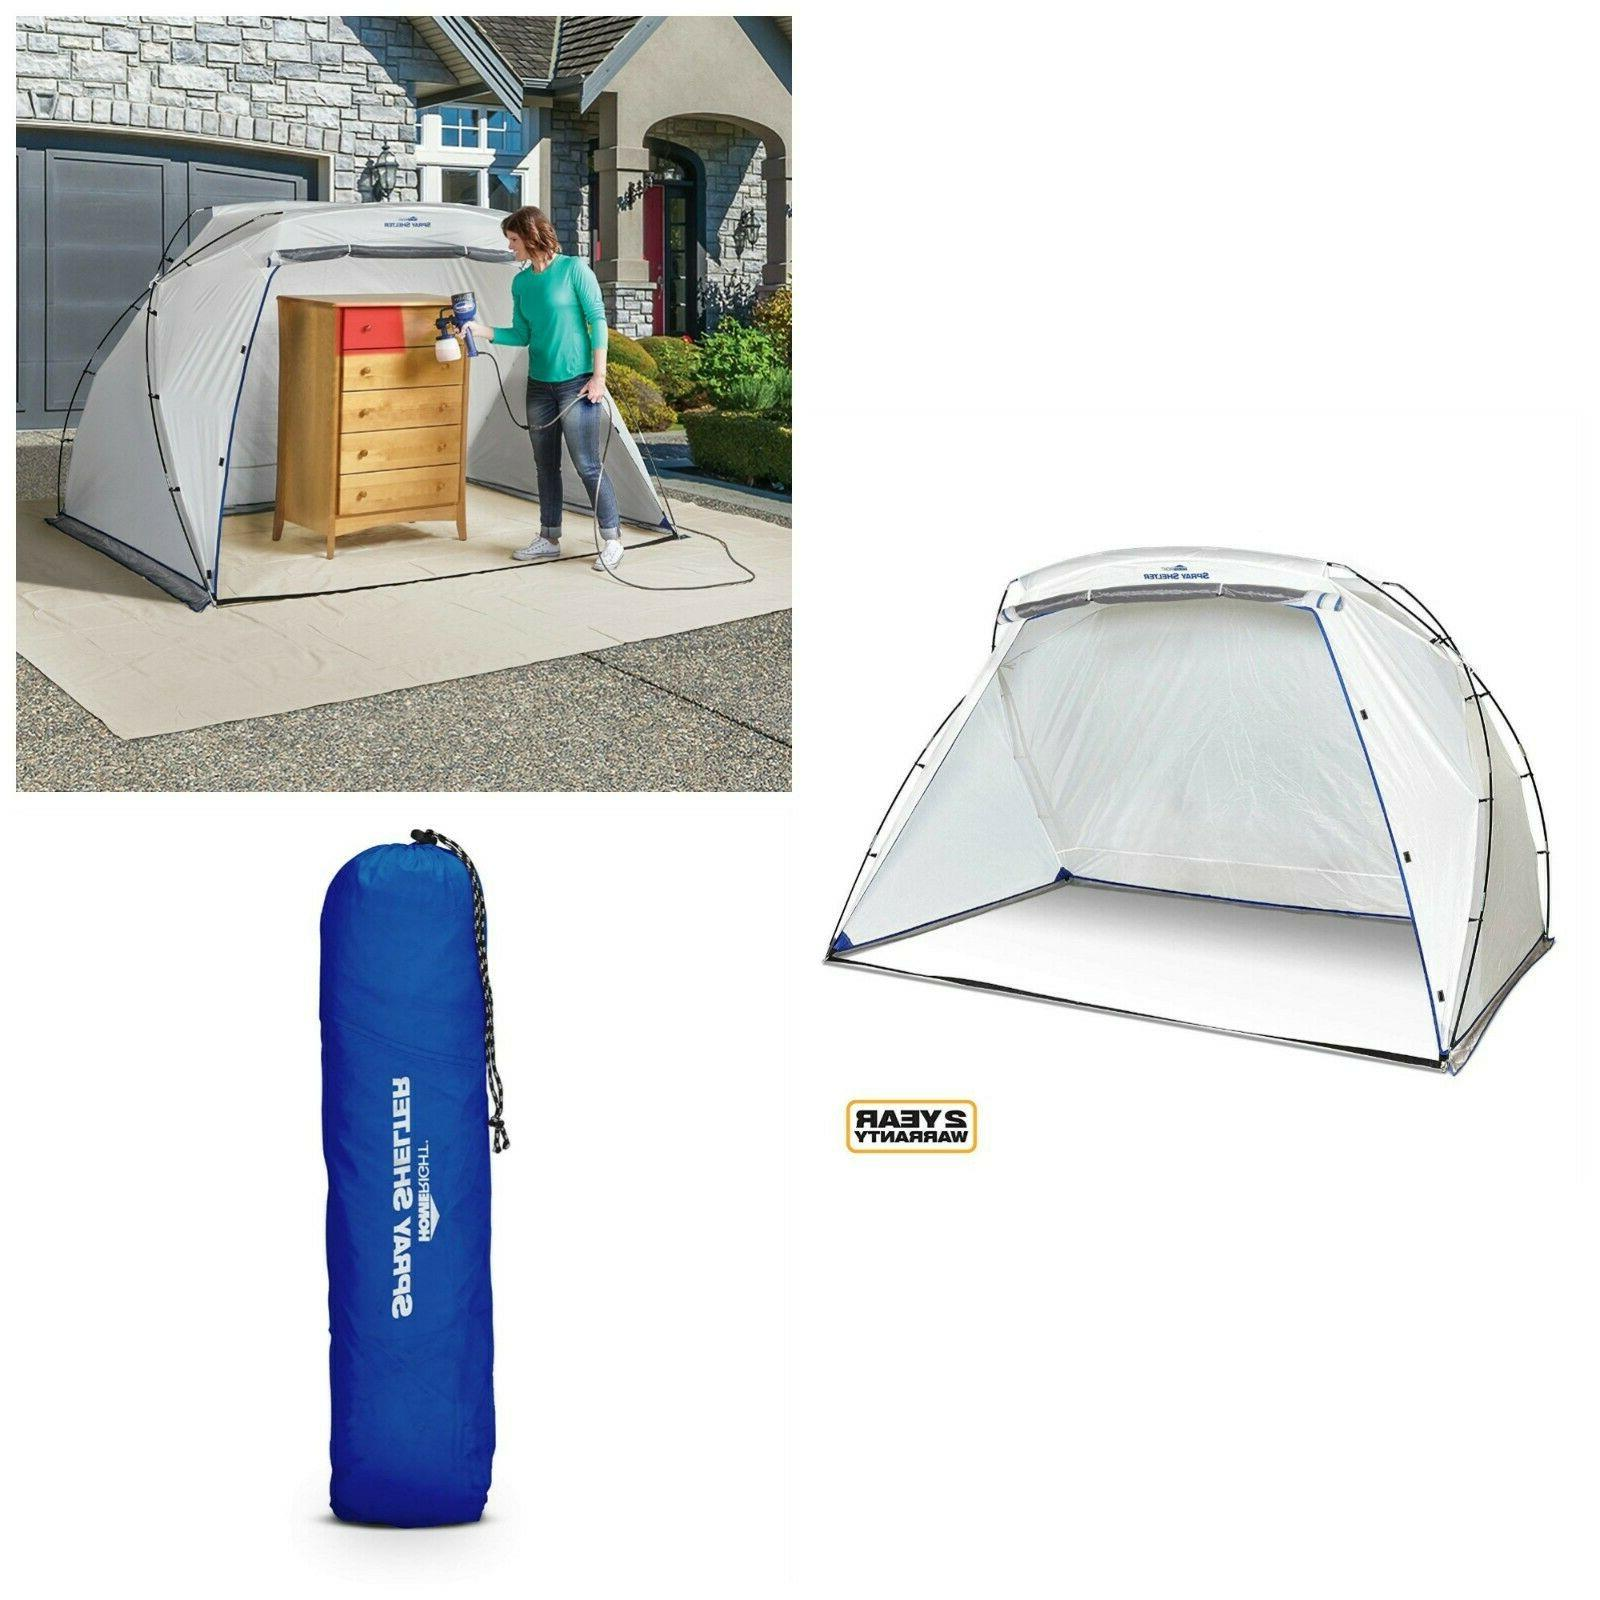 homeright spray shelter with bag collapsible tent